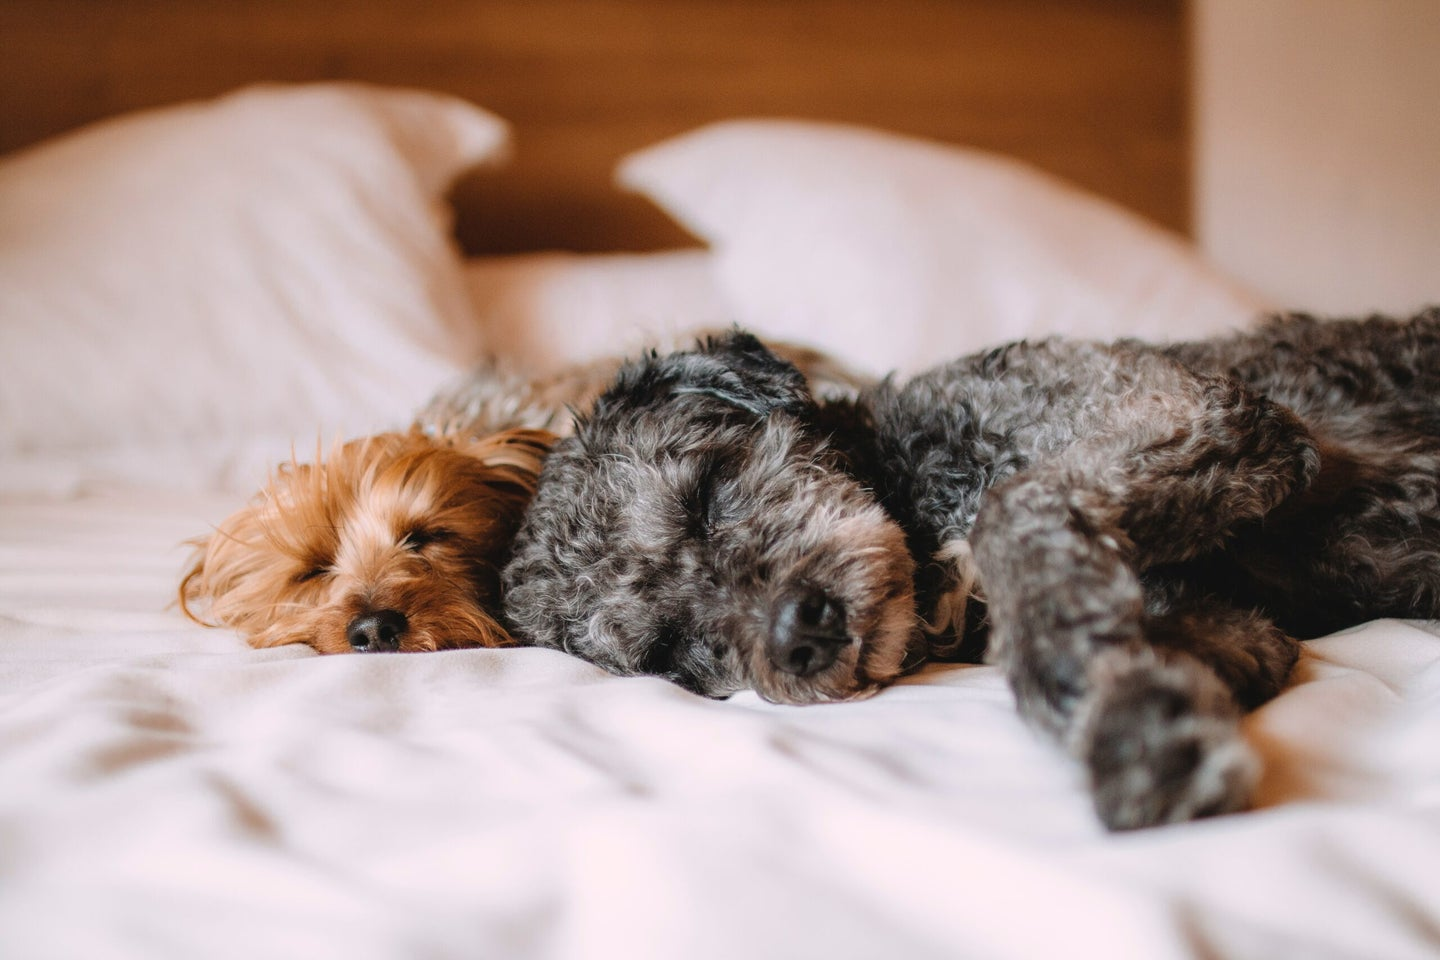 two dogs sleeping on a bed